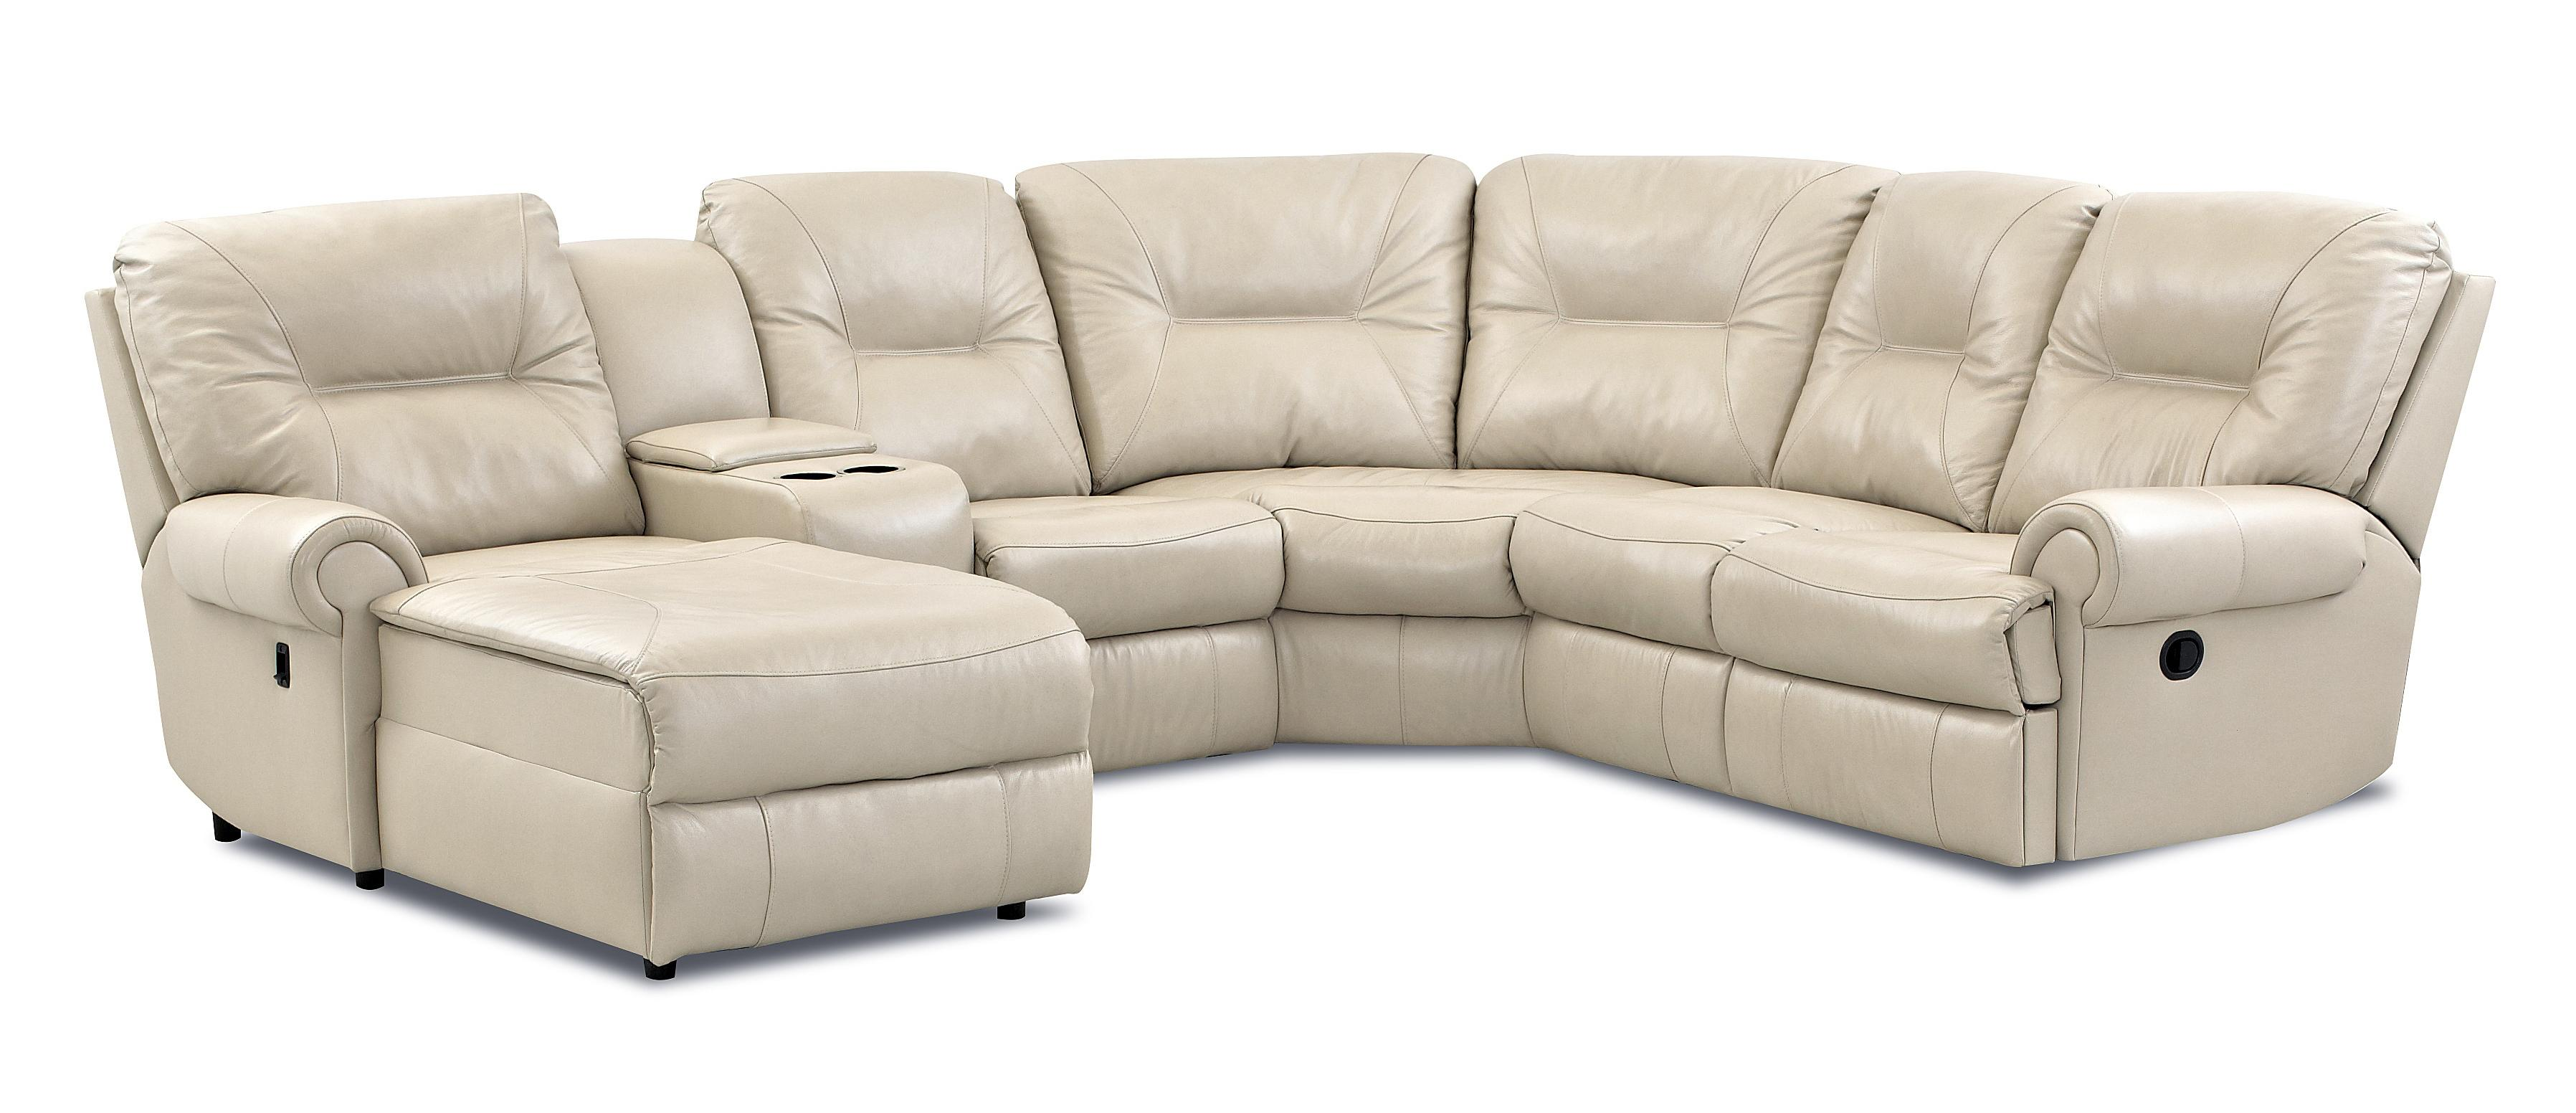 Roadster Traditional Reclining Sectional Sofa by Klaussner at Pilgrim Furniture City